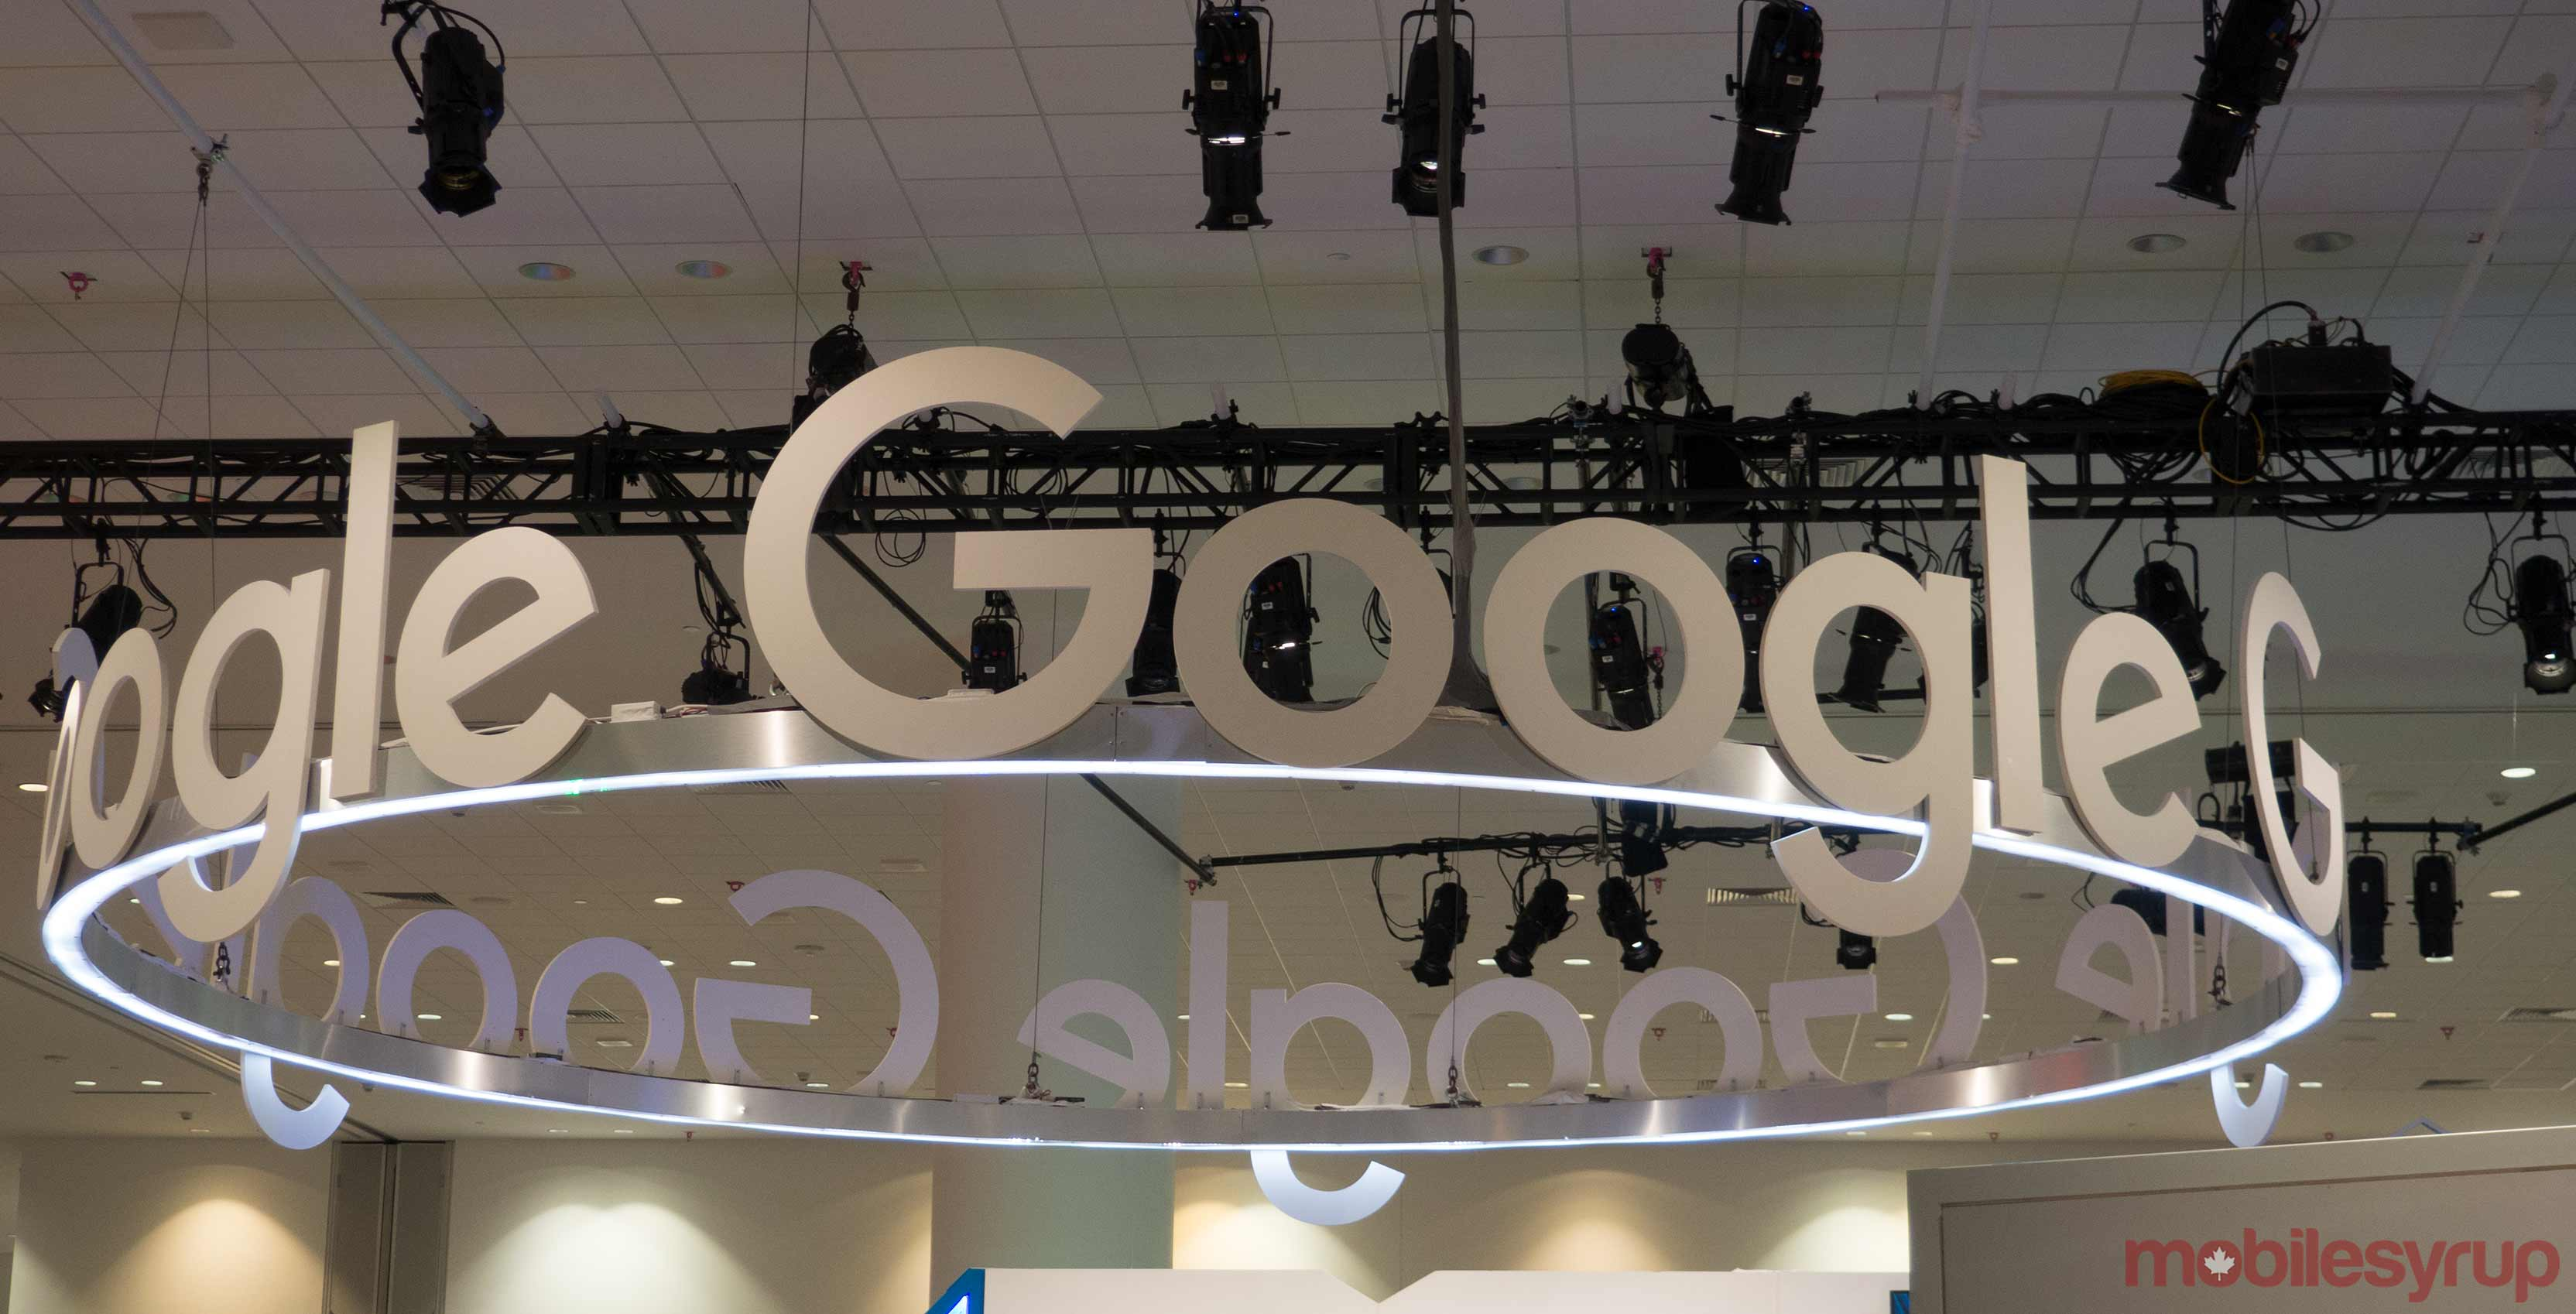 Google's new Federated Learning feature aims to protect your data